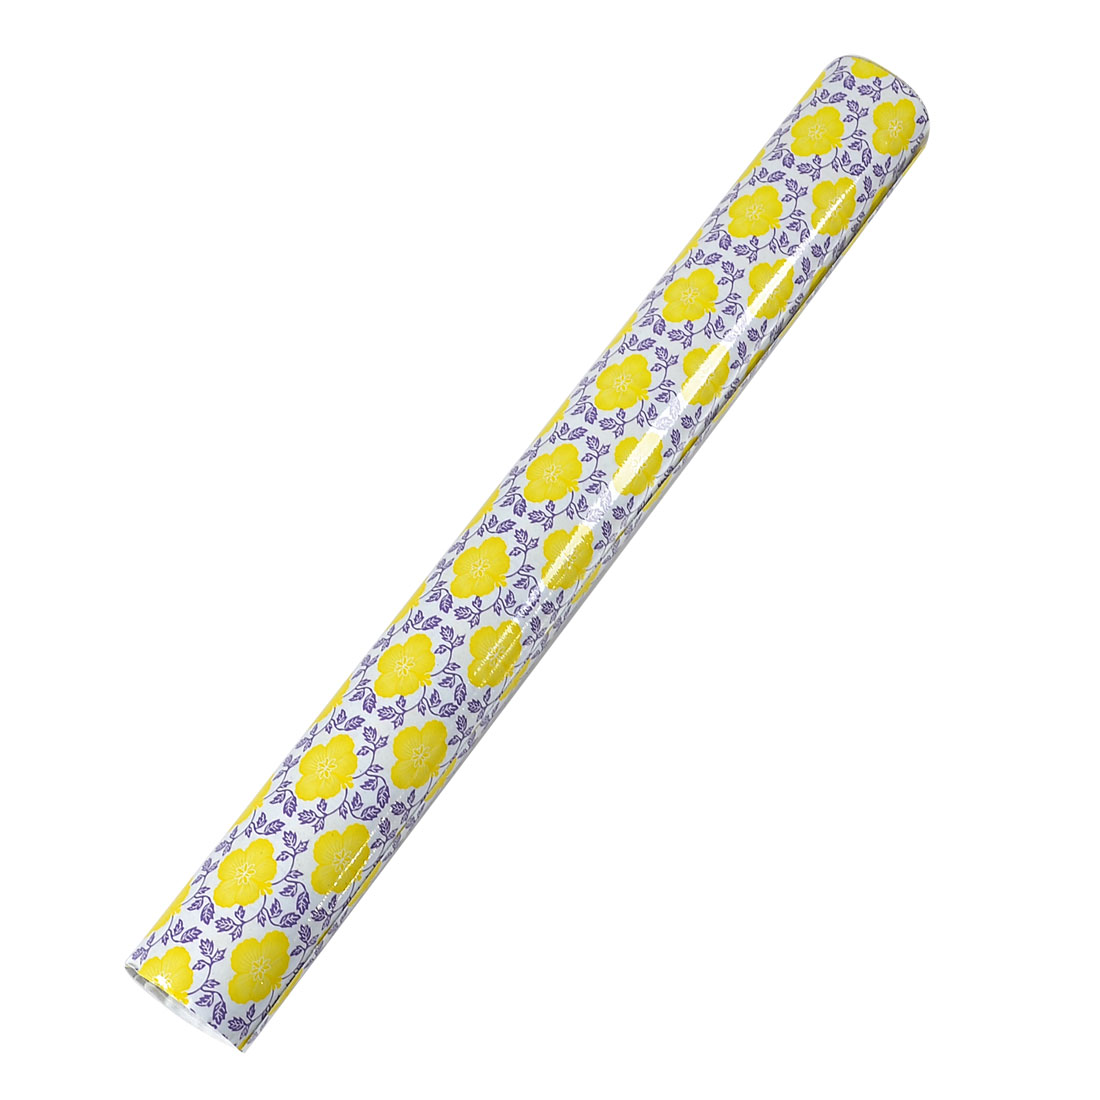 45cm x 1.8m Yellow Flower Purple Leaf Pattern Adhesive Glass Decal Film